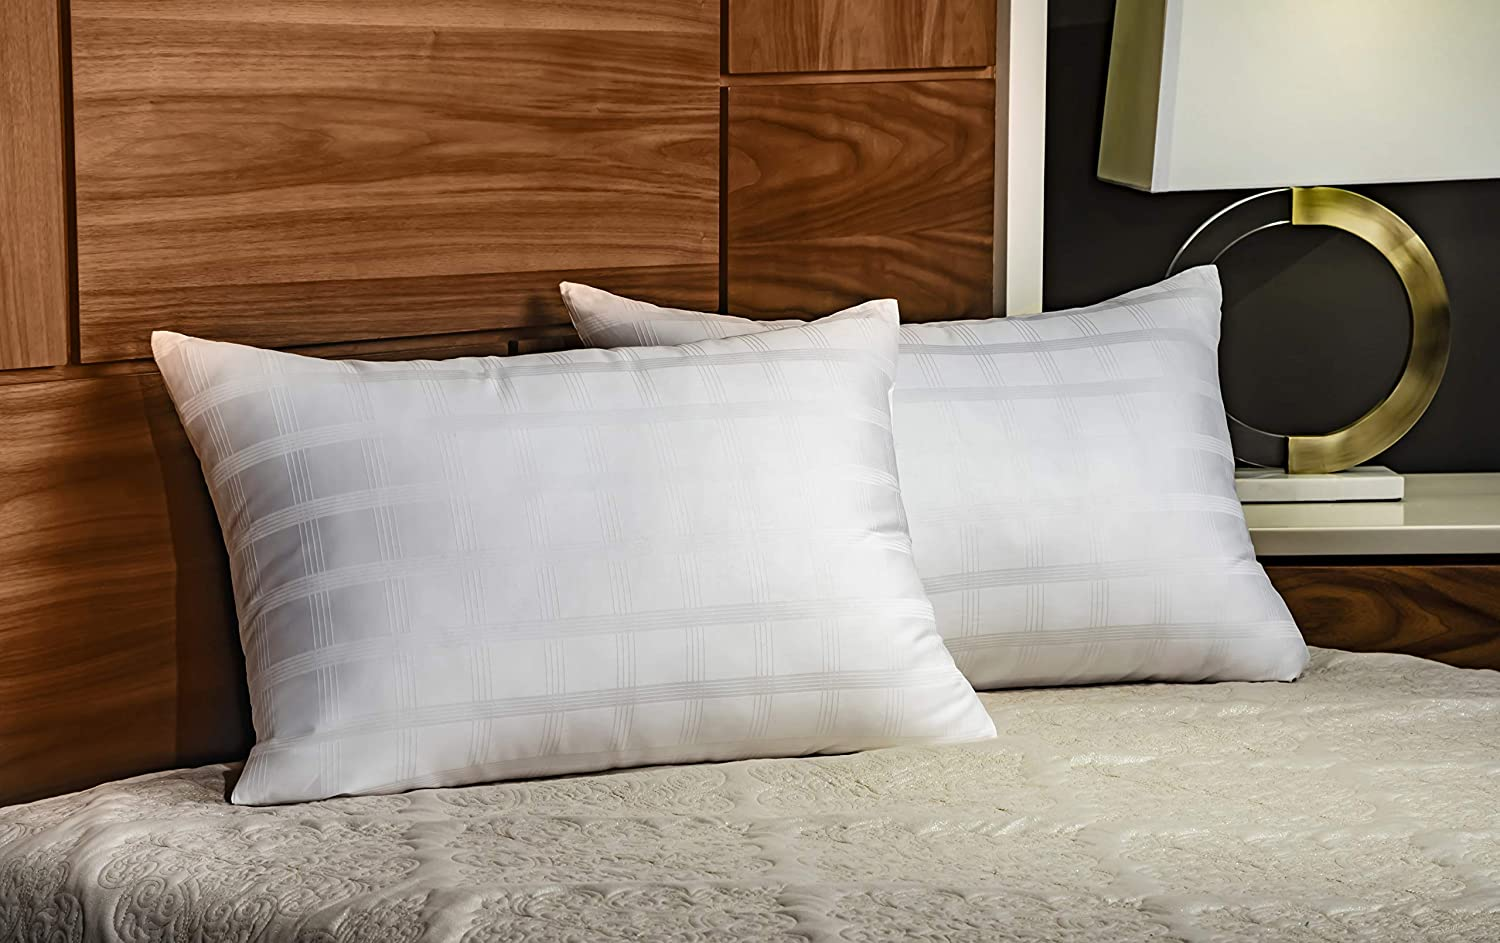 In Style Furnishings - Luxury Set of 2 Gel Fiber Bed Pillows